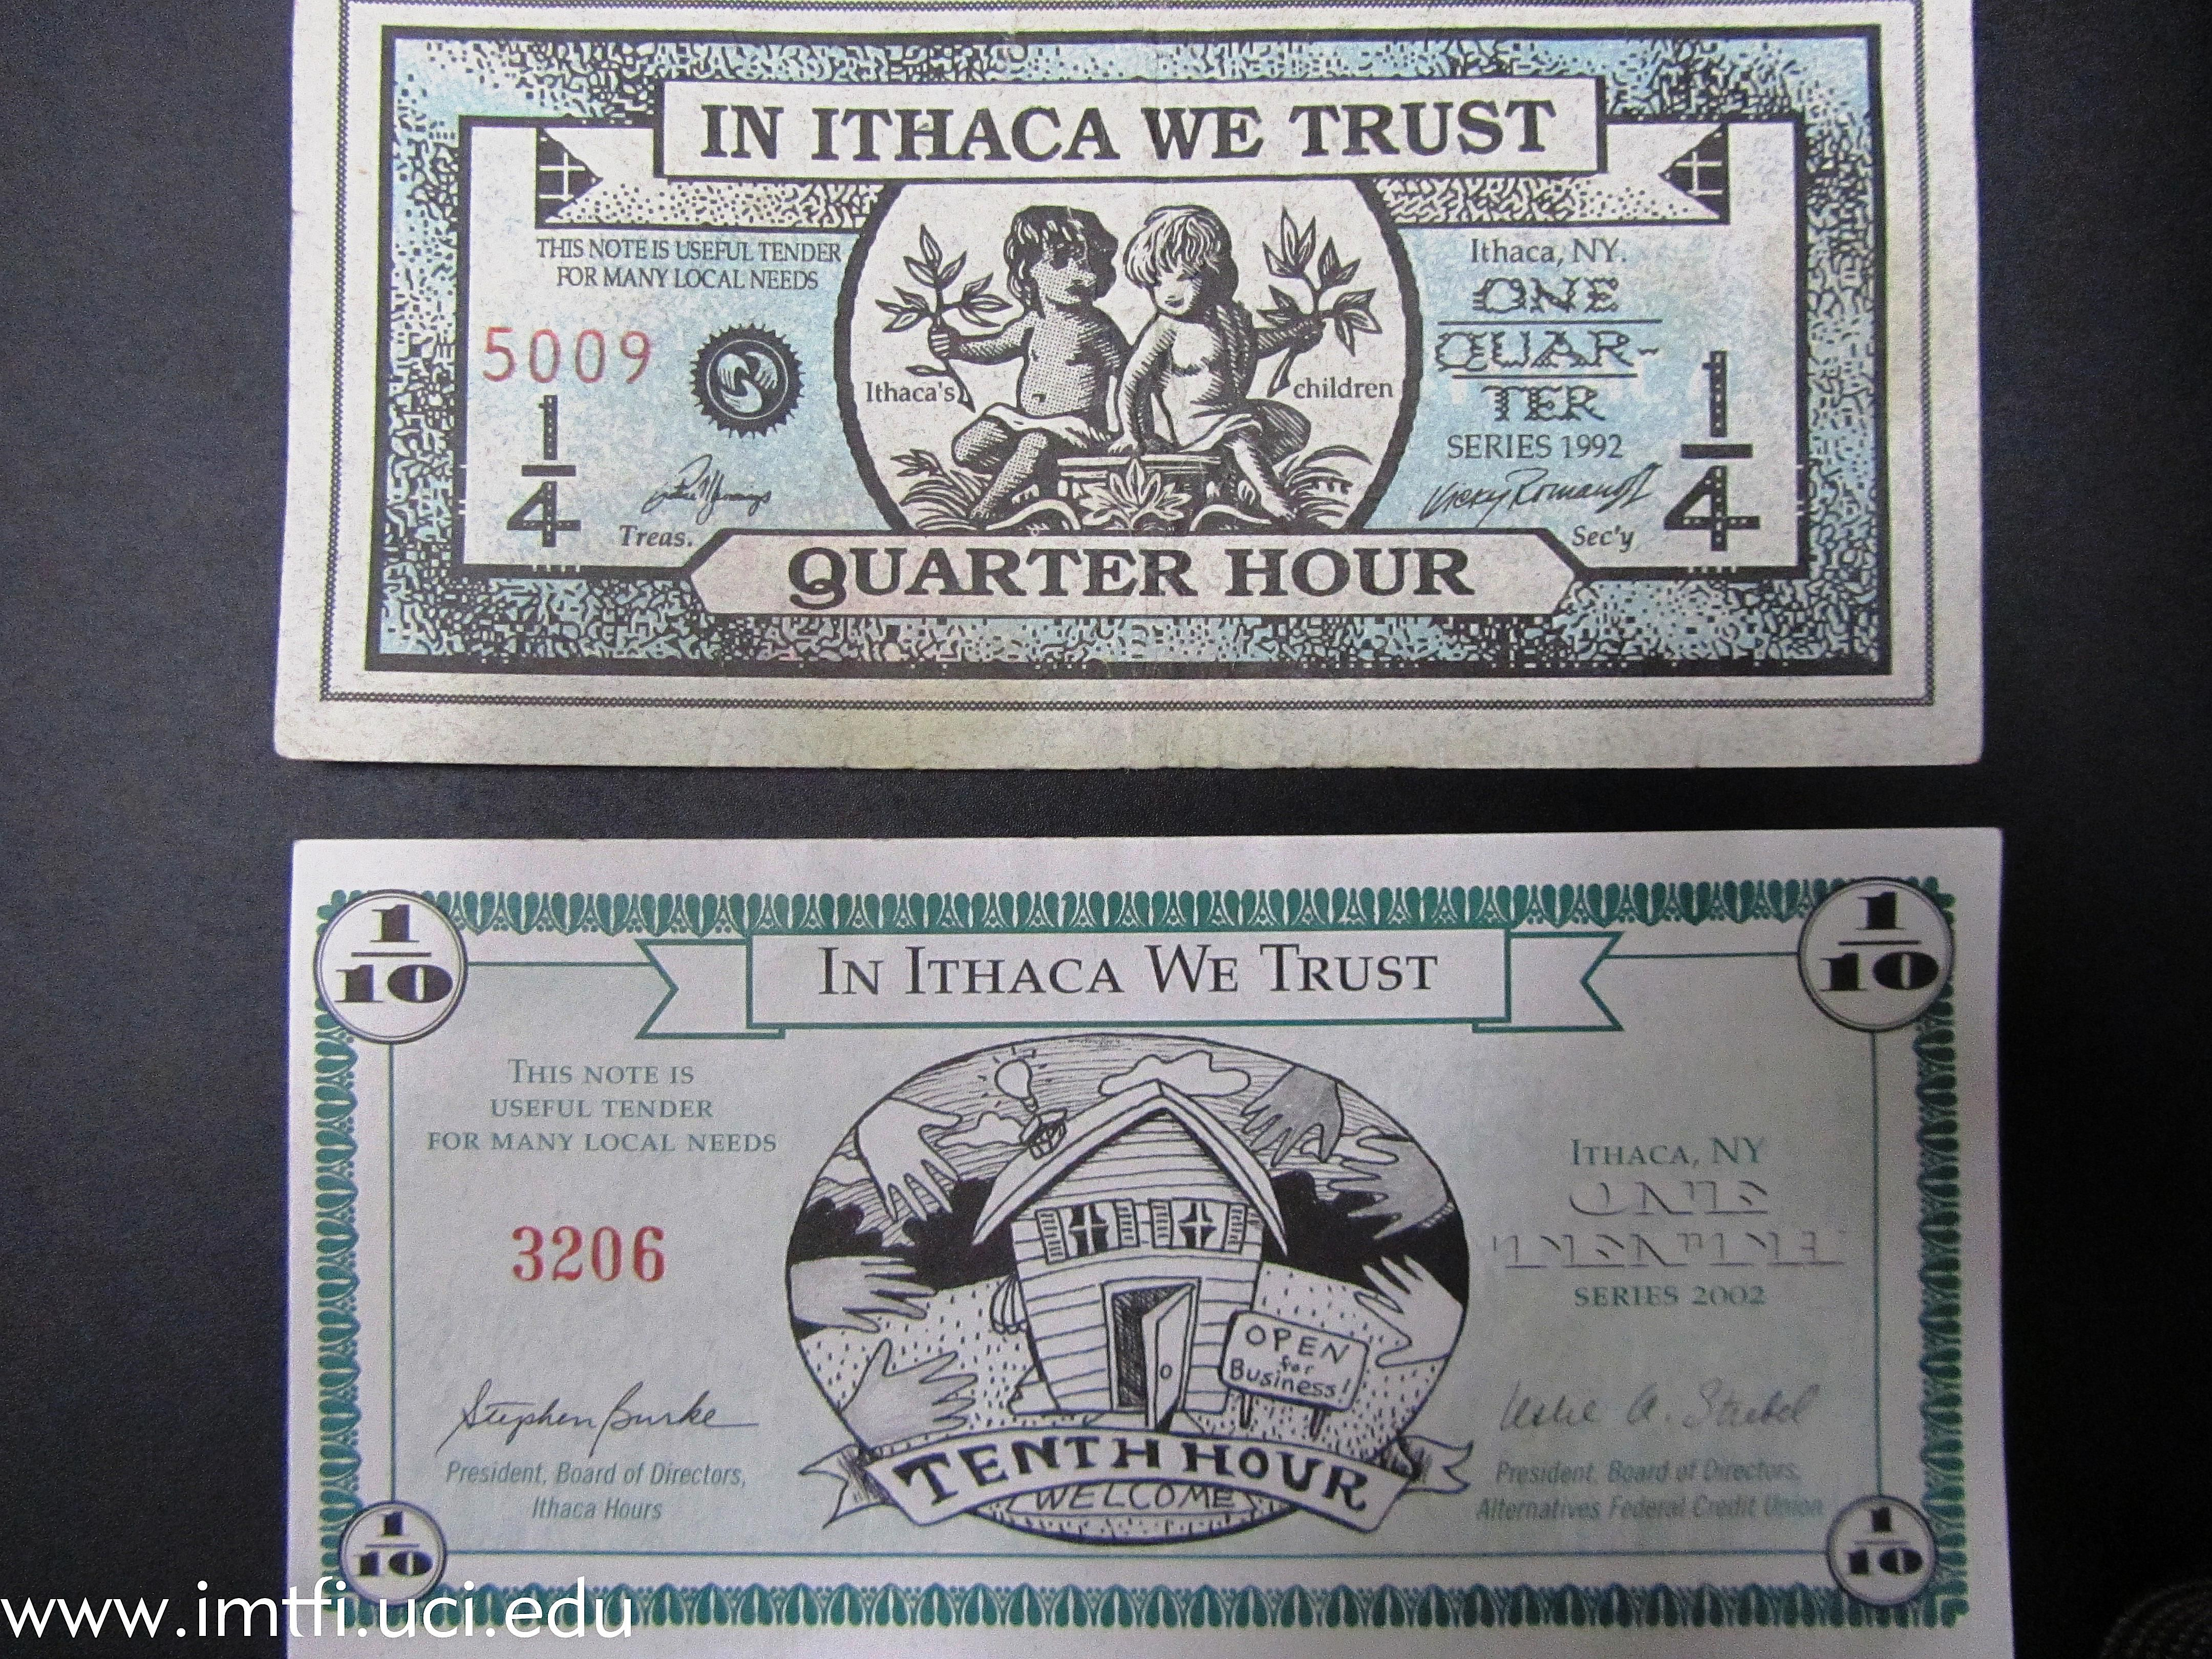 Ithaca Hours, the Local Currency